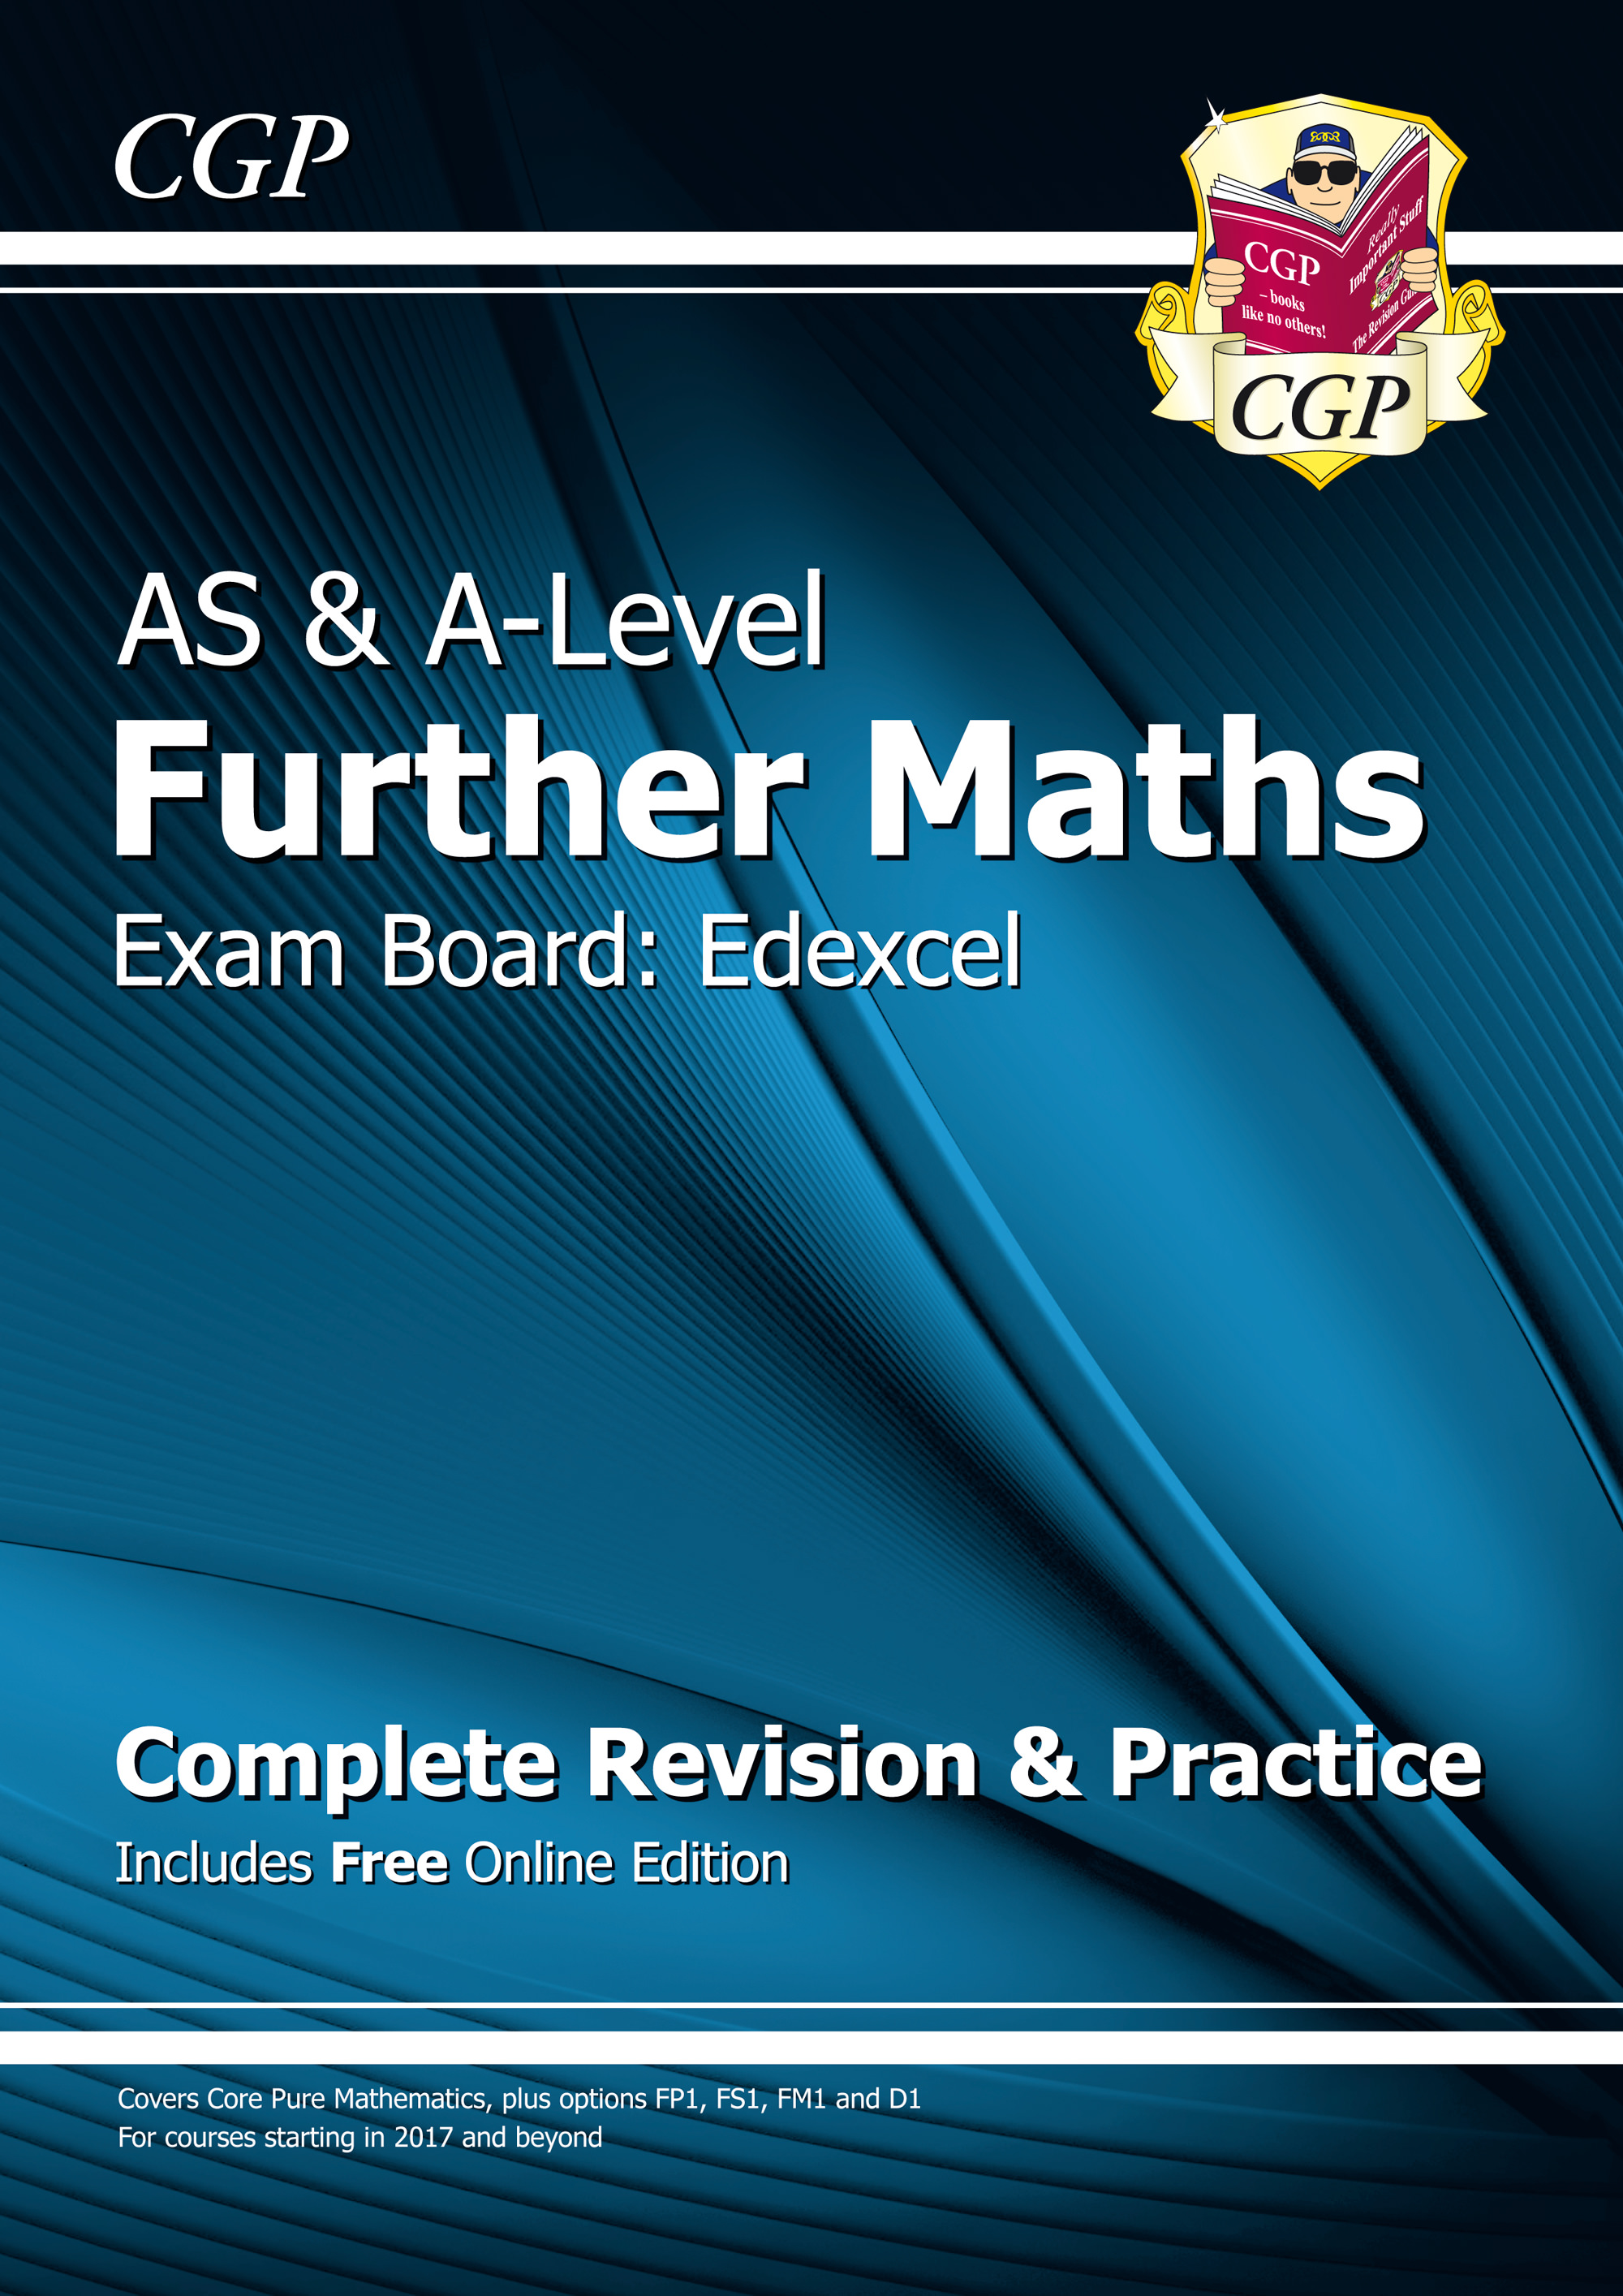 MFER71 - AS & A-Level Further Maths for Edexcel: Complete Revision & Practice with Online Edition